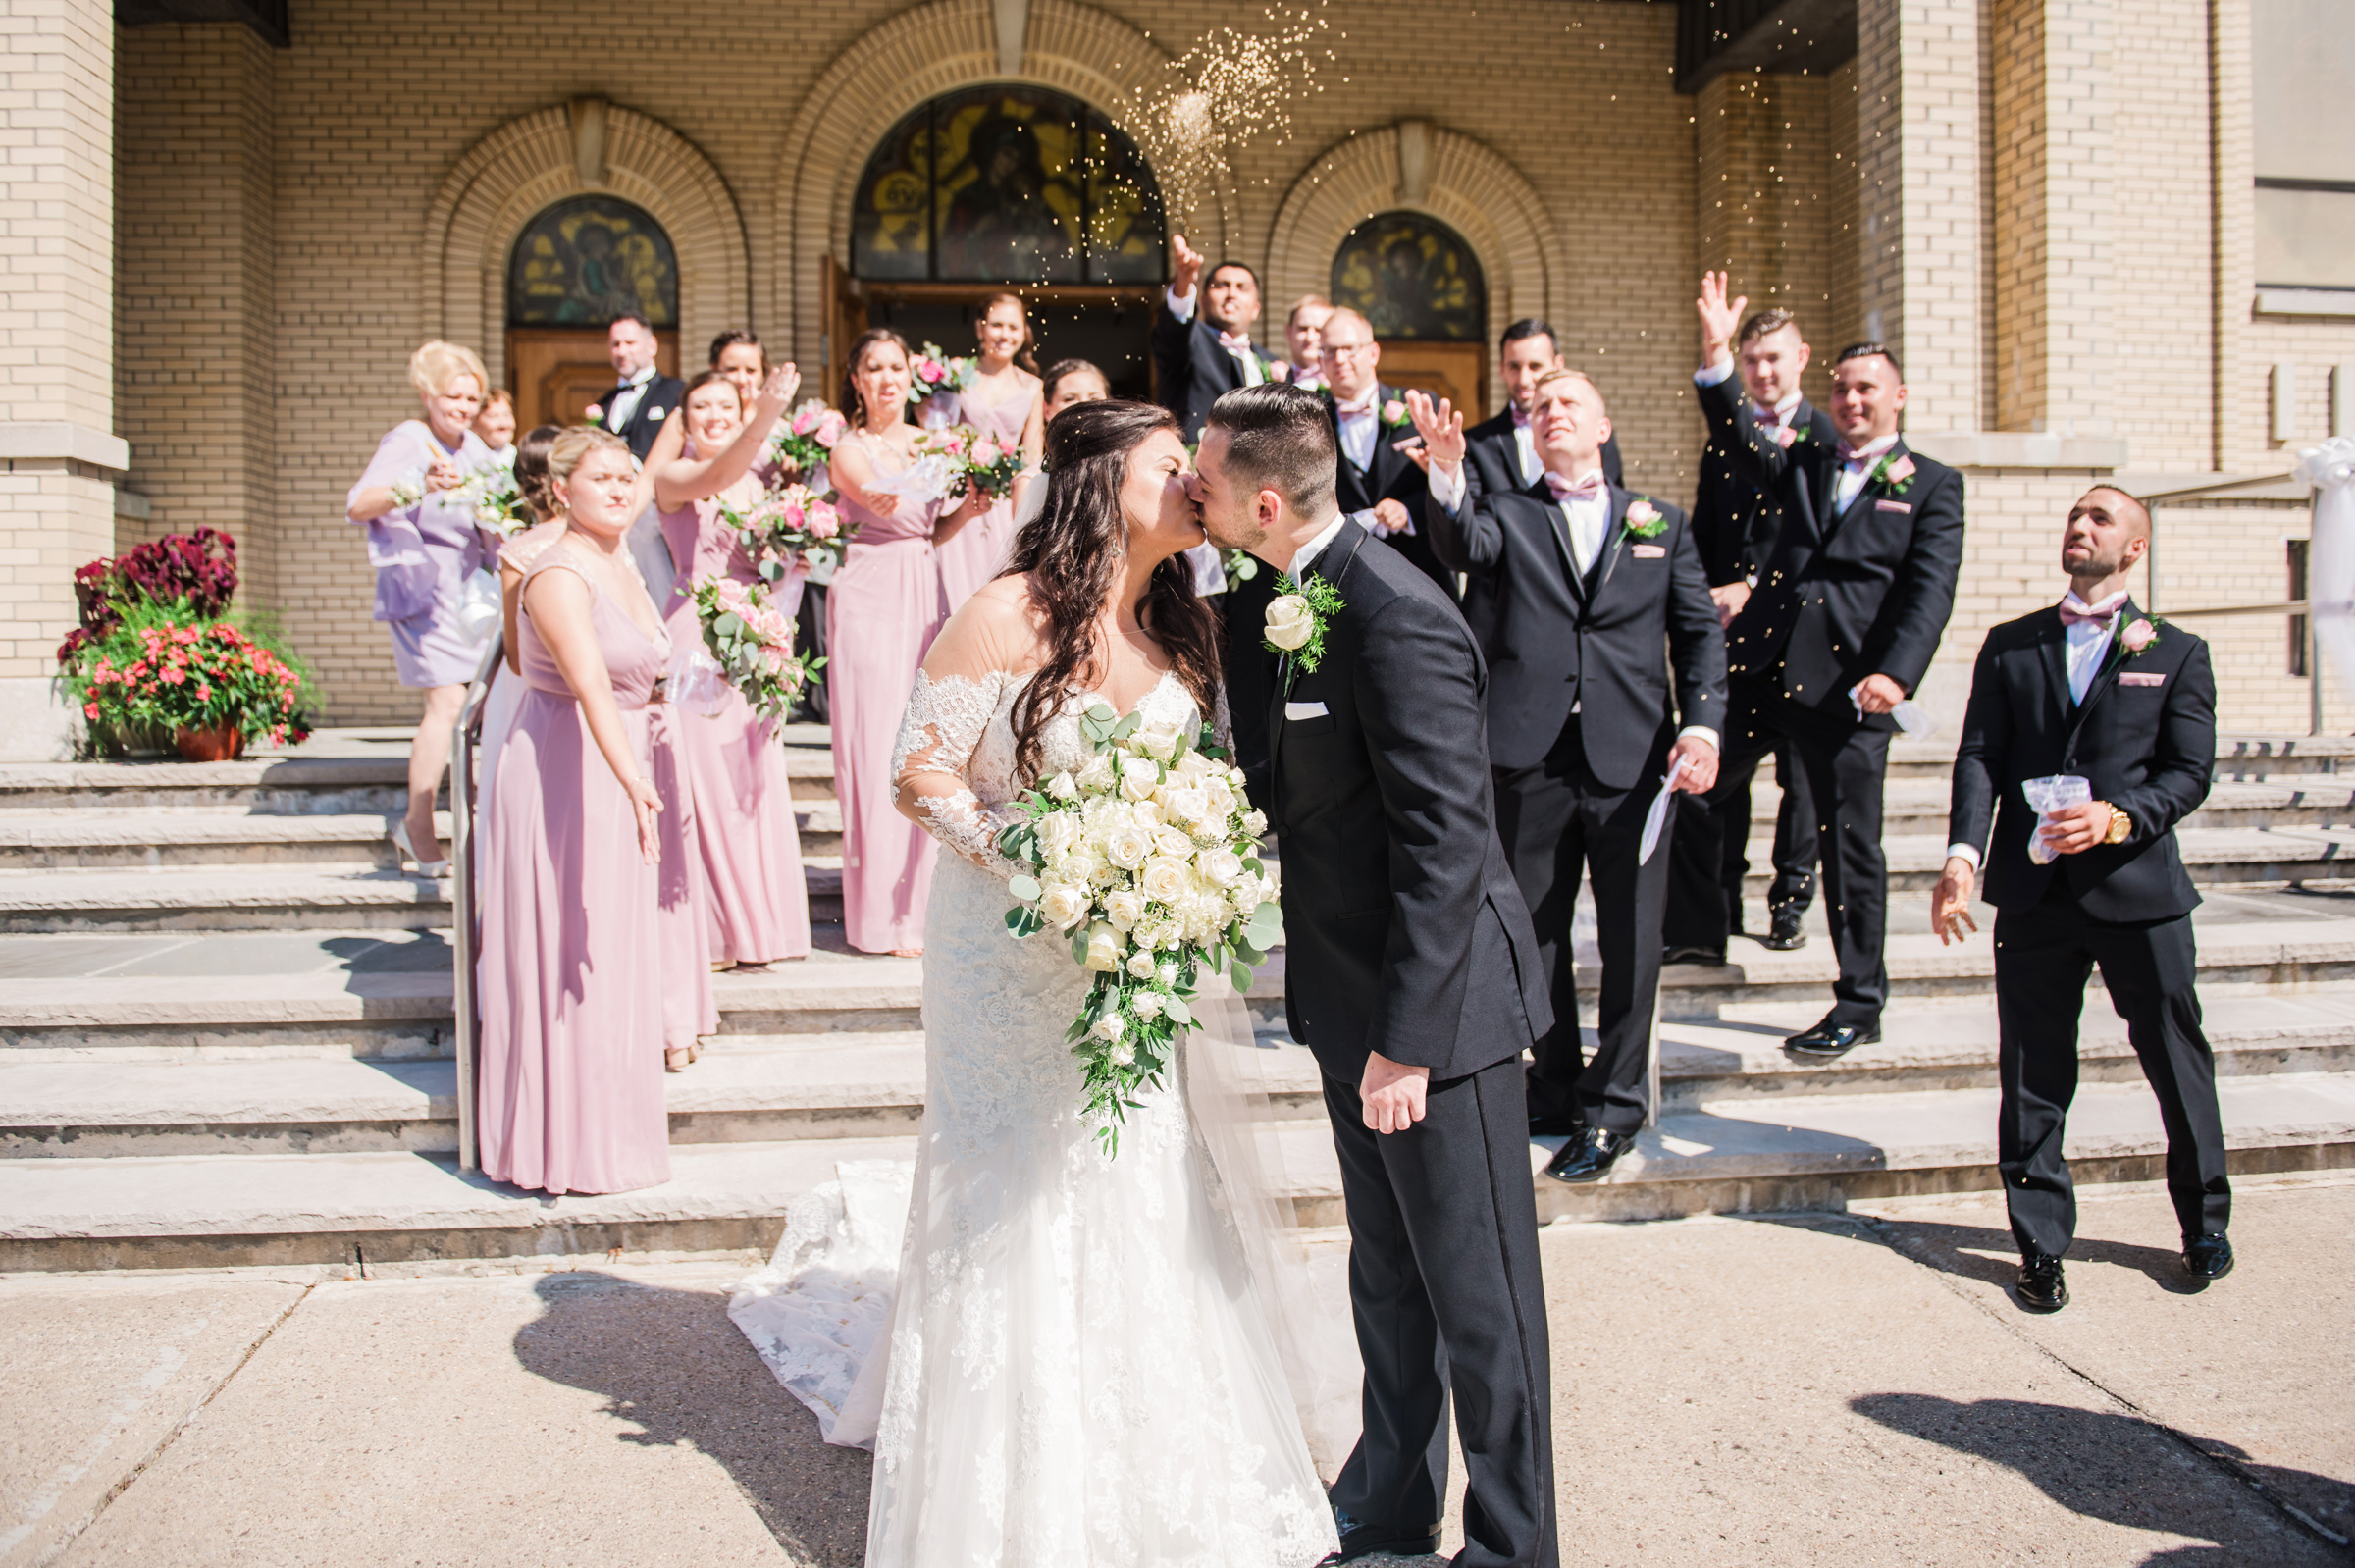 JILL_STUDIO_Wedding_JILL_STUDIO_Rochester_NY_Photographer_21-DSC_2528.jpg